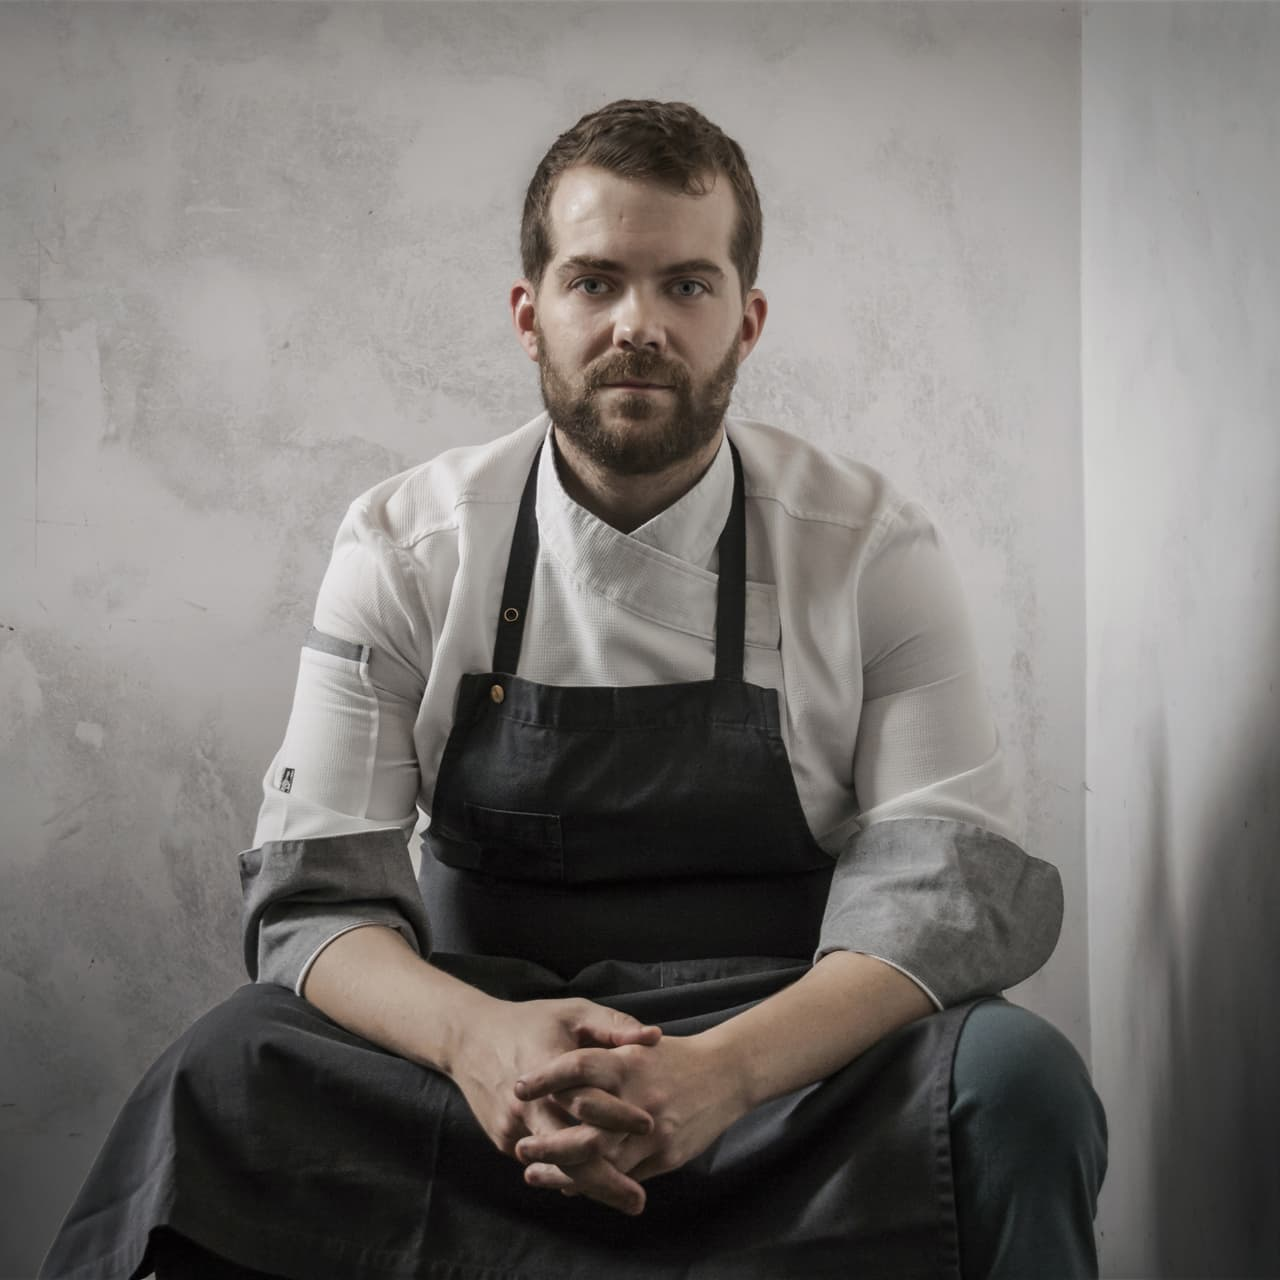 Diego López, winner of the Galician Chef of the Year award in 2014.